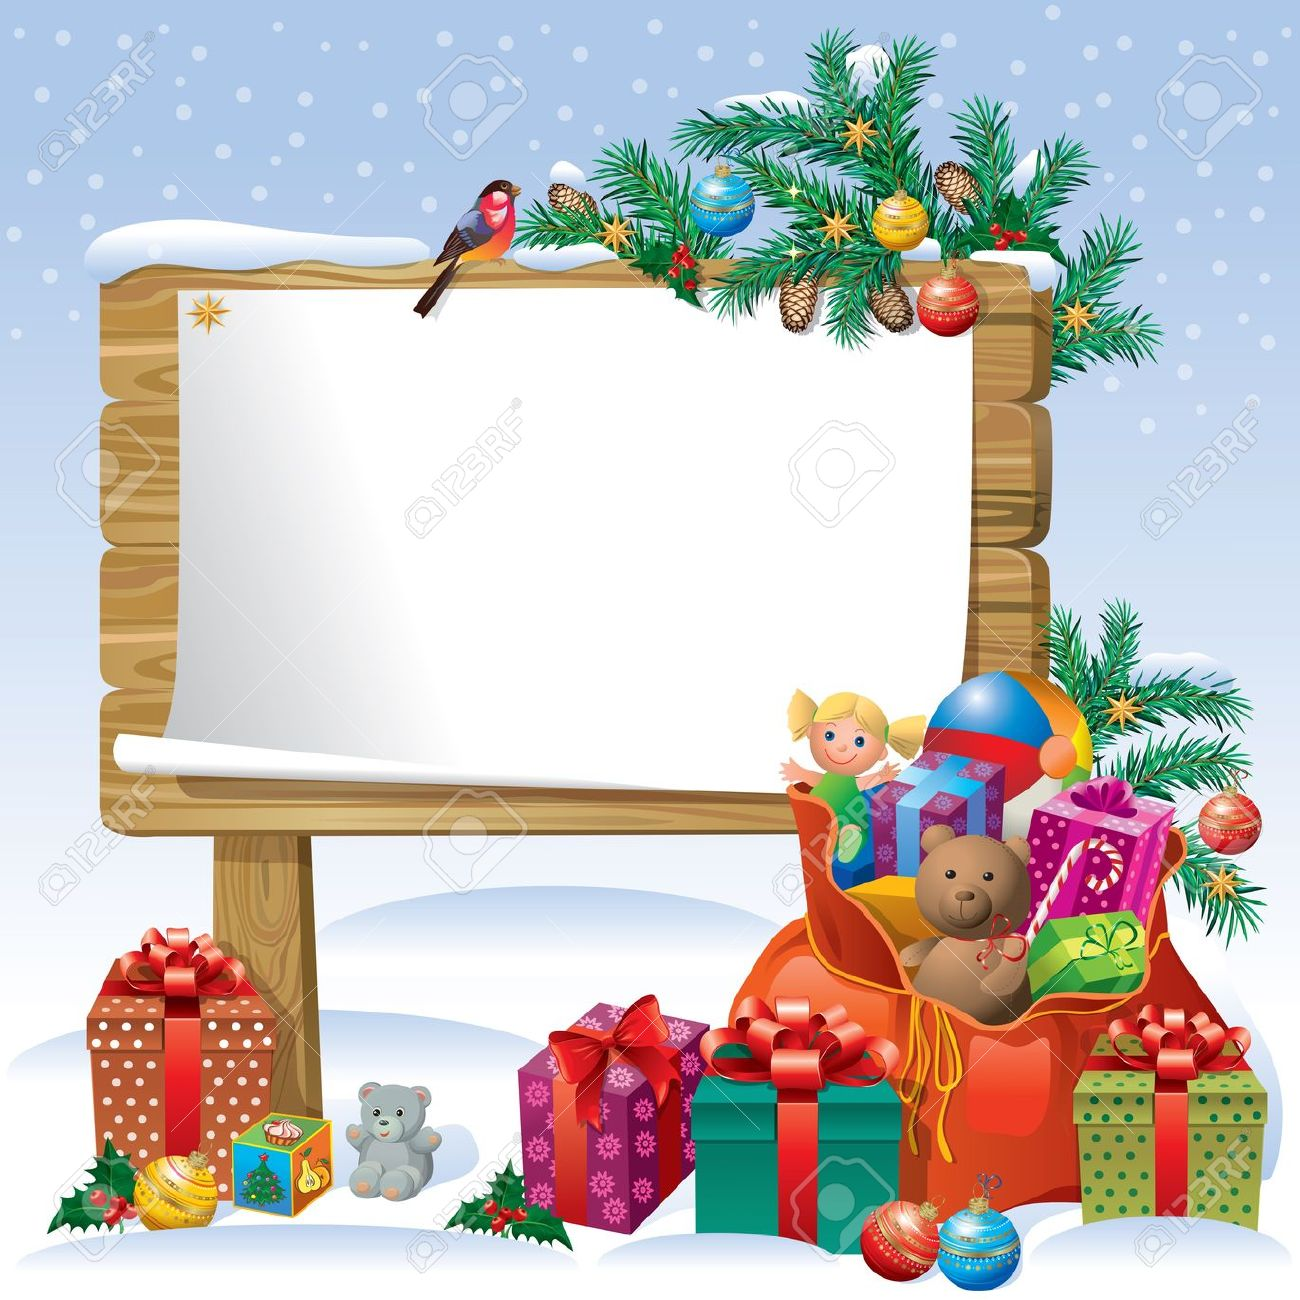 Presents Toys Christmas : Christmas presents clipart bord clipground